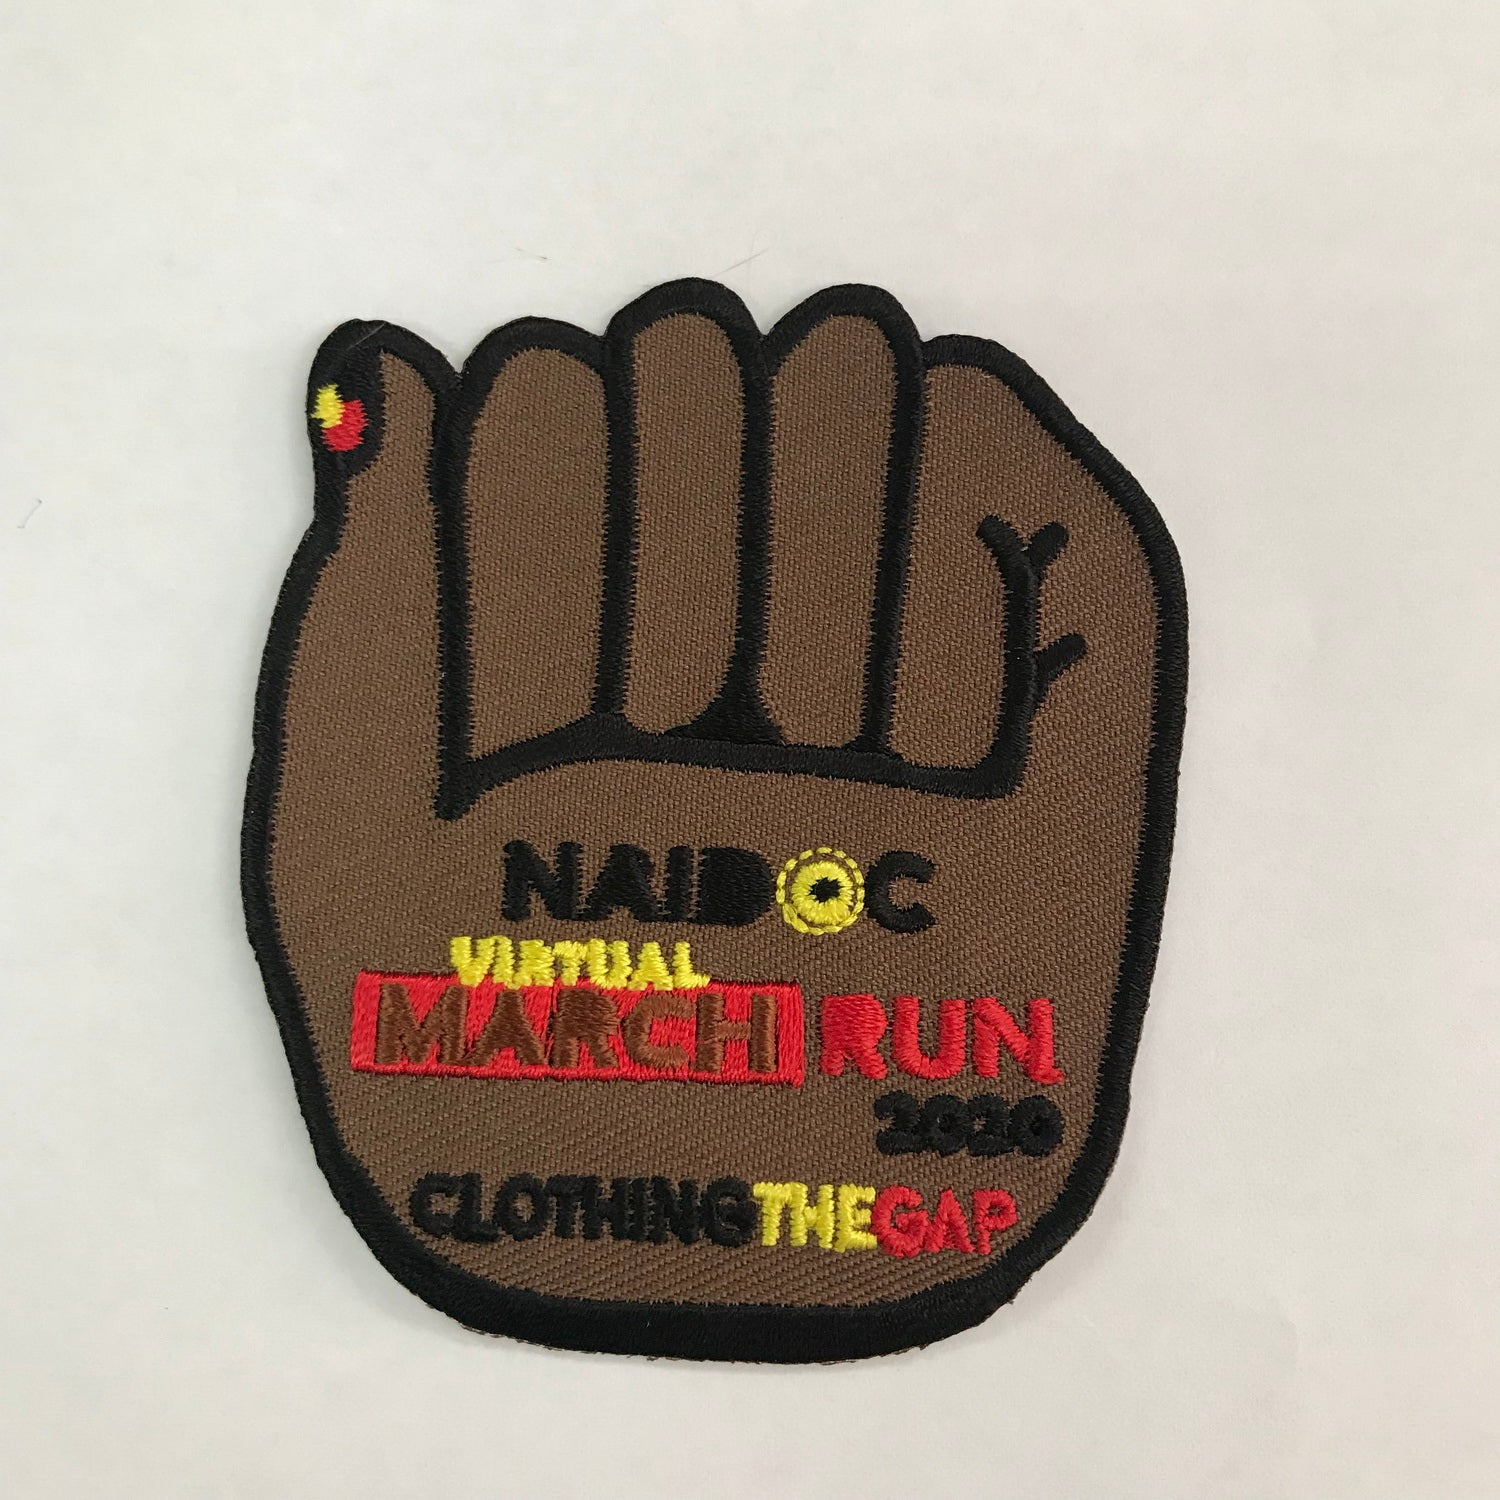 NAIDOC MARCH CLOTHING THE GAP PATCH